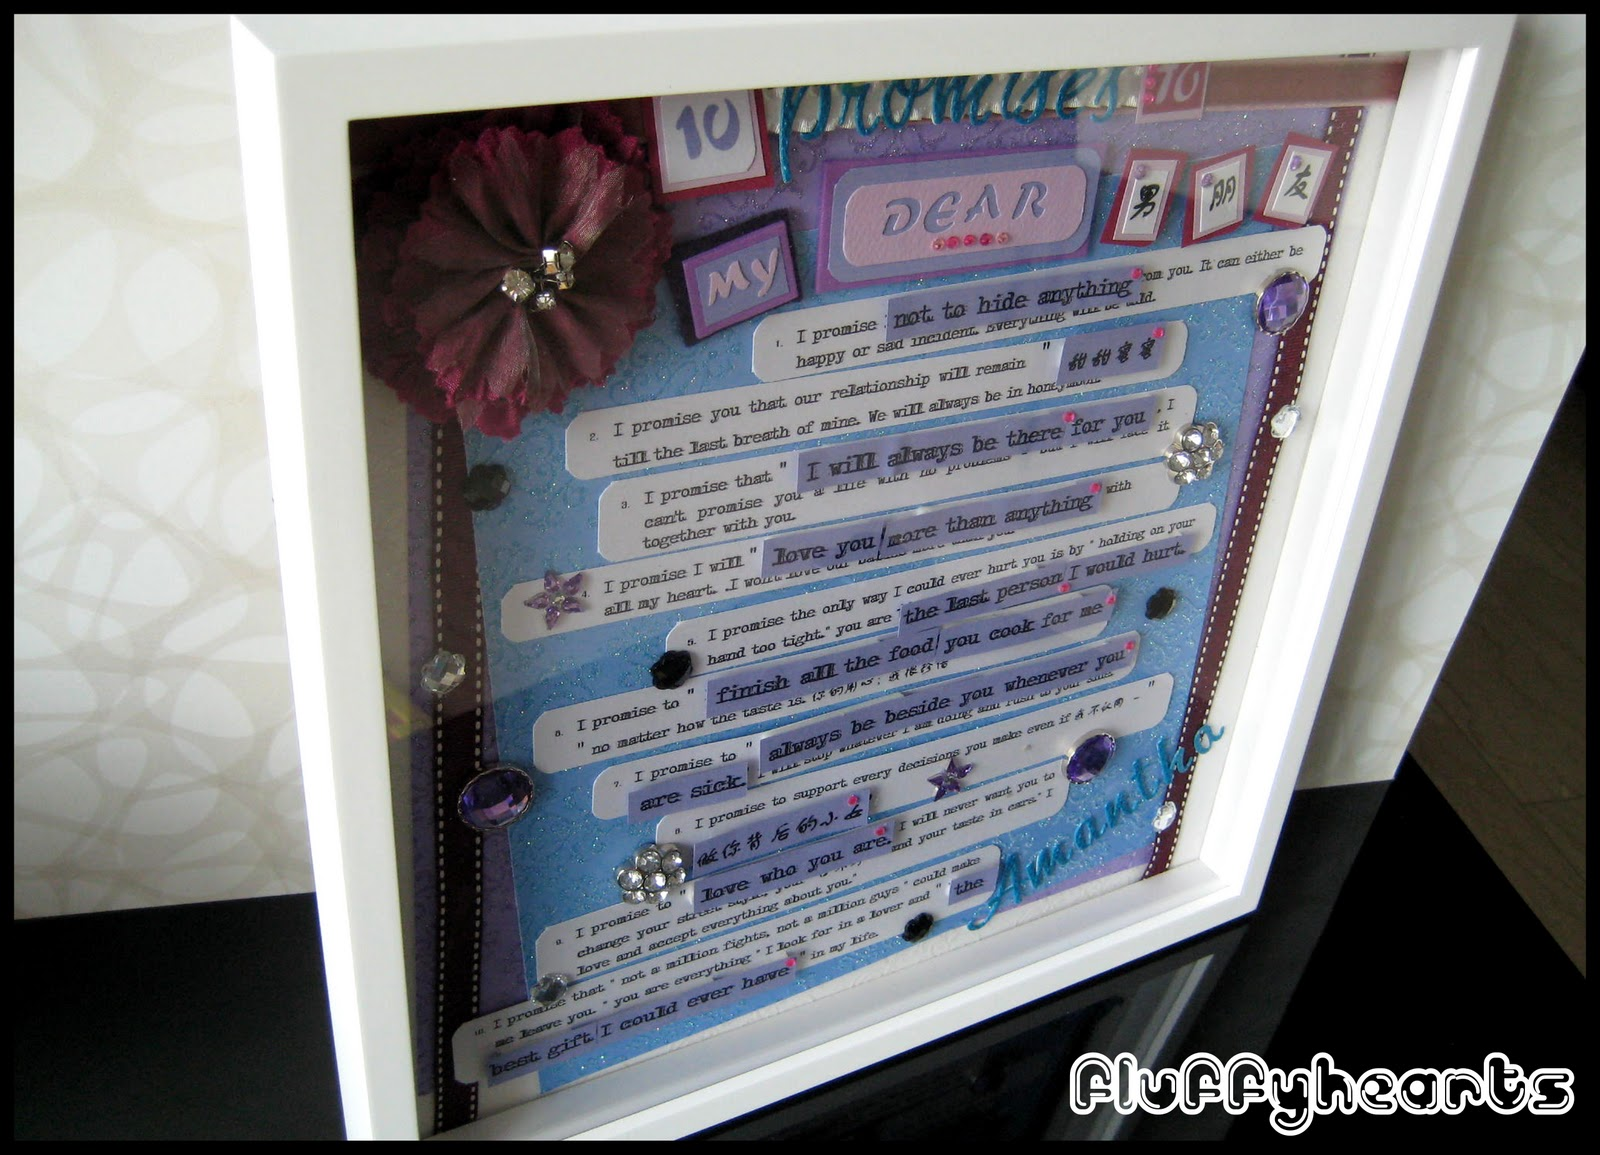 Fluffyheartz ♥: Frame with promises to boyfriend from his sweetheart